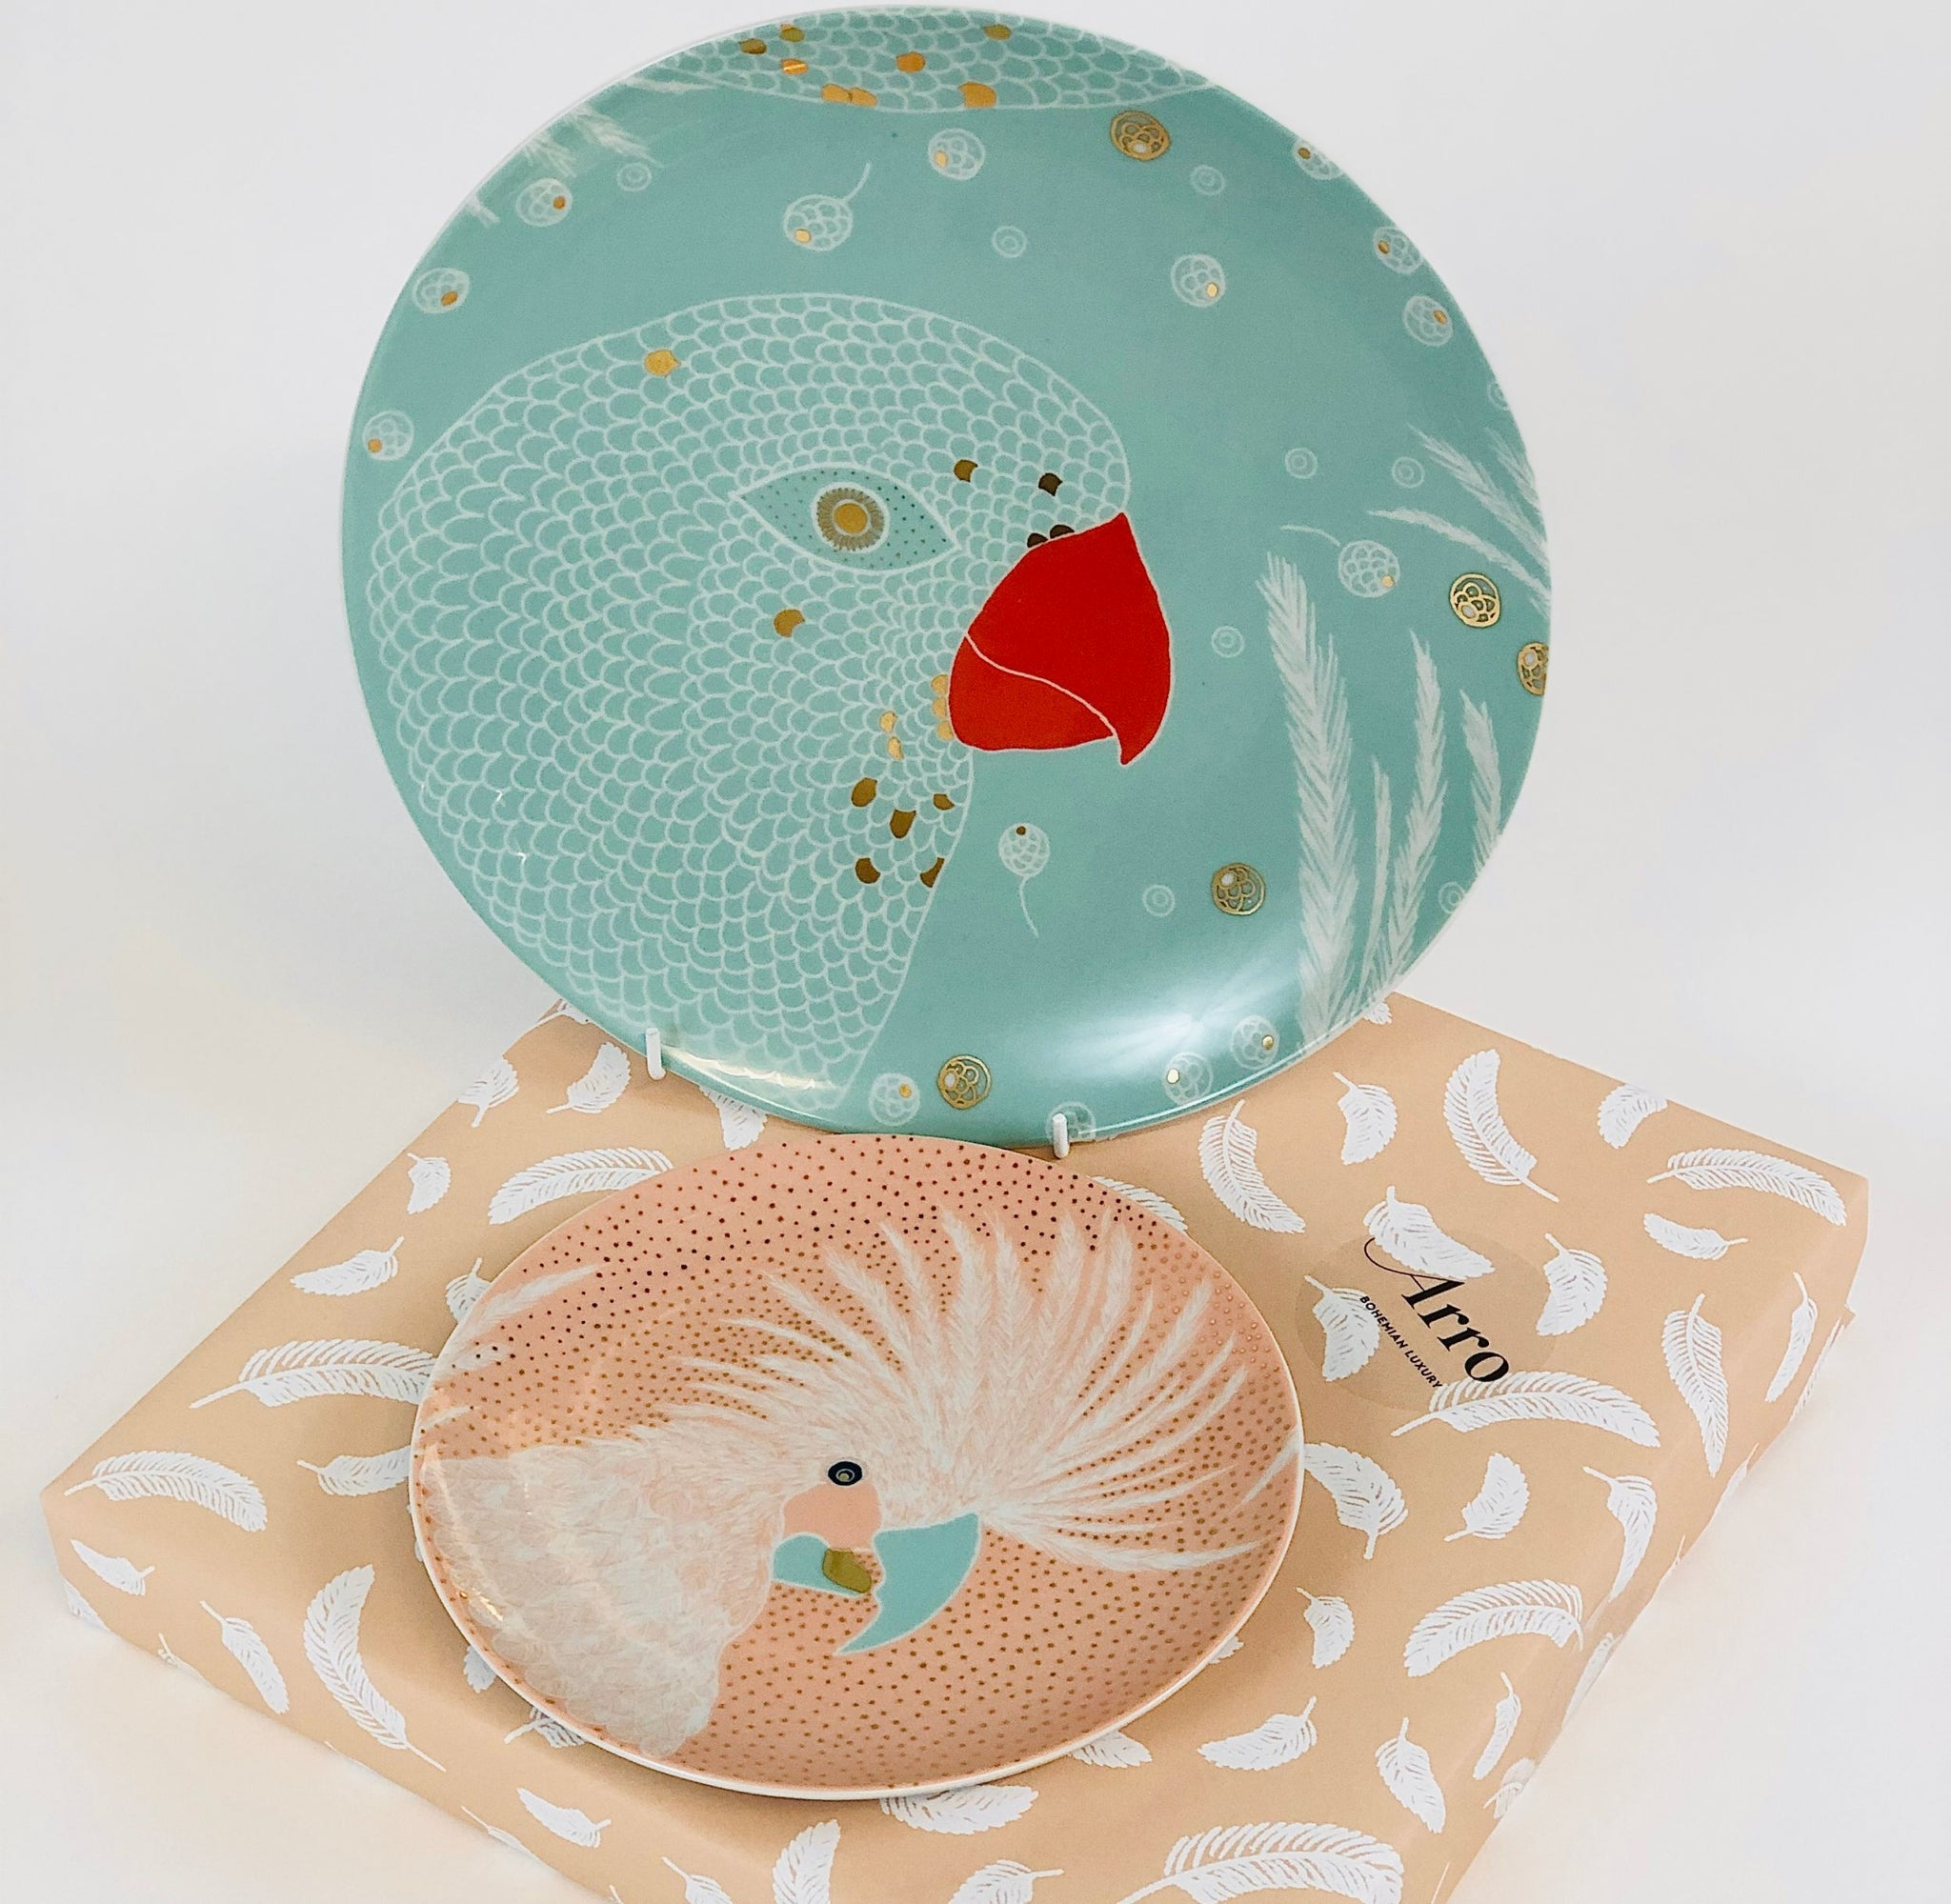 Turquoise Dinner plate with Powder Pink Dessert Plate, gift-wrapped